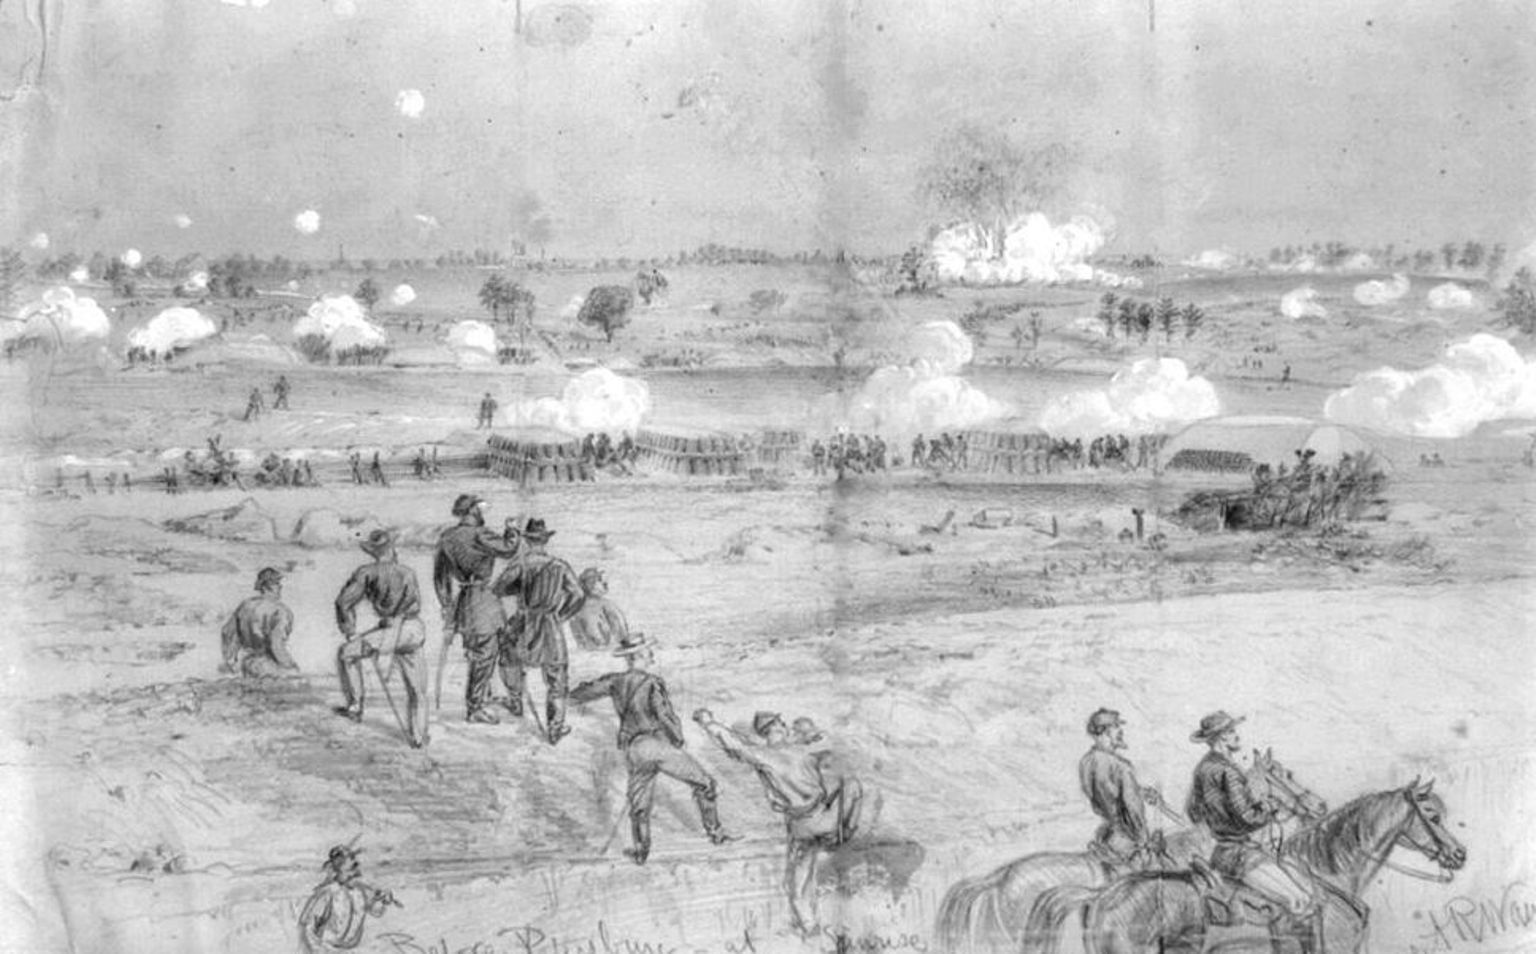 an introduction to the history of the siege of petersburg Introduction: the siege of petersburg, the longest military event of the american civil war (1861-1865), endured nine and a half months, and sustained 70,000 casualties.